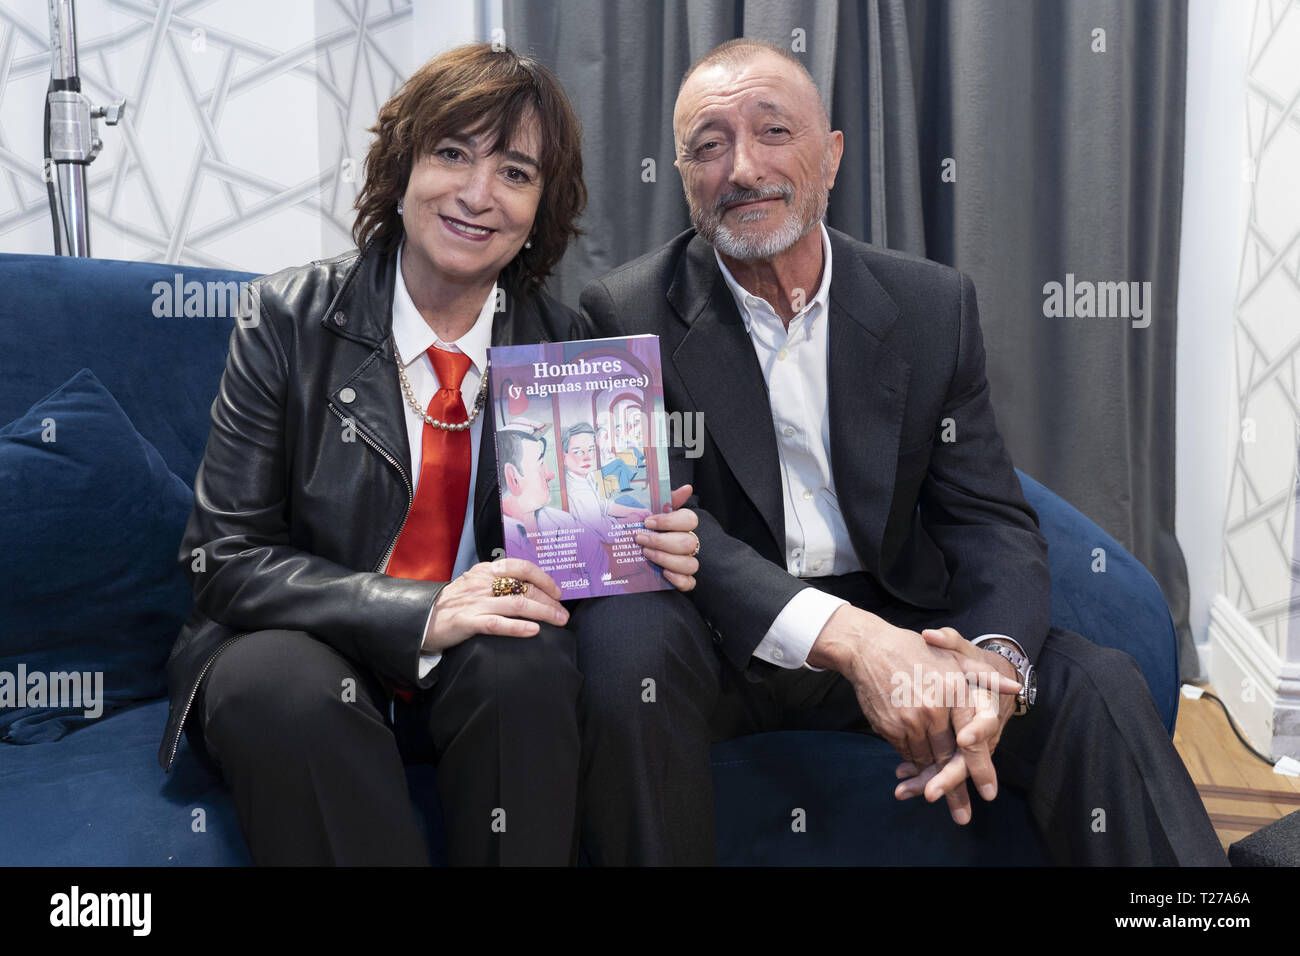 Rosa Montero and Arturo Perez Reverte during the Hombres (y algunas mujeres) book launch in Madrid  Featuring: Arturo Perez Reverte, Rosa Montero Where: Madrid, Spain When: 27 Feb 2019 Credit: Oscar Gonzalez/WENN.com - Stock Image